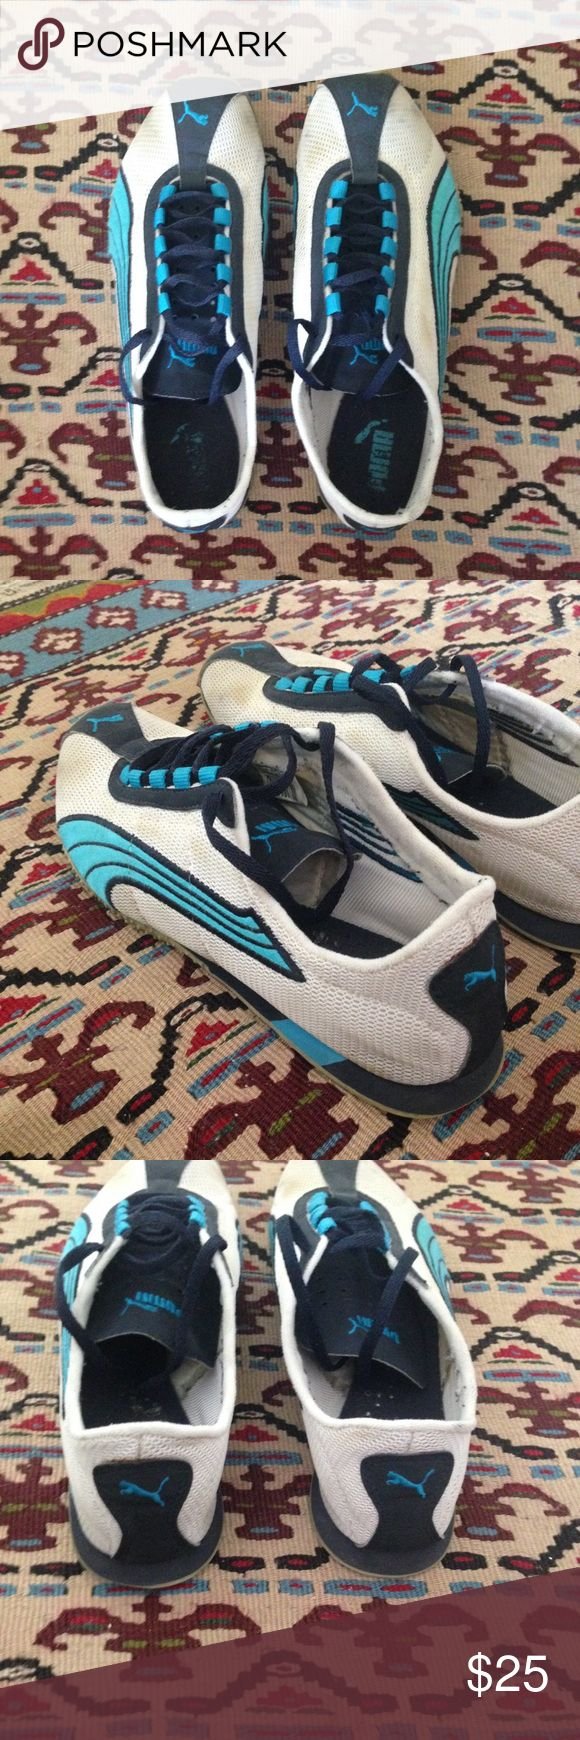 Lightweight Puma Sneakers This is Men Puma Sneaker Men size 9 Gently worn Puma Shoes Sneakers